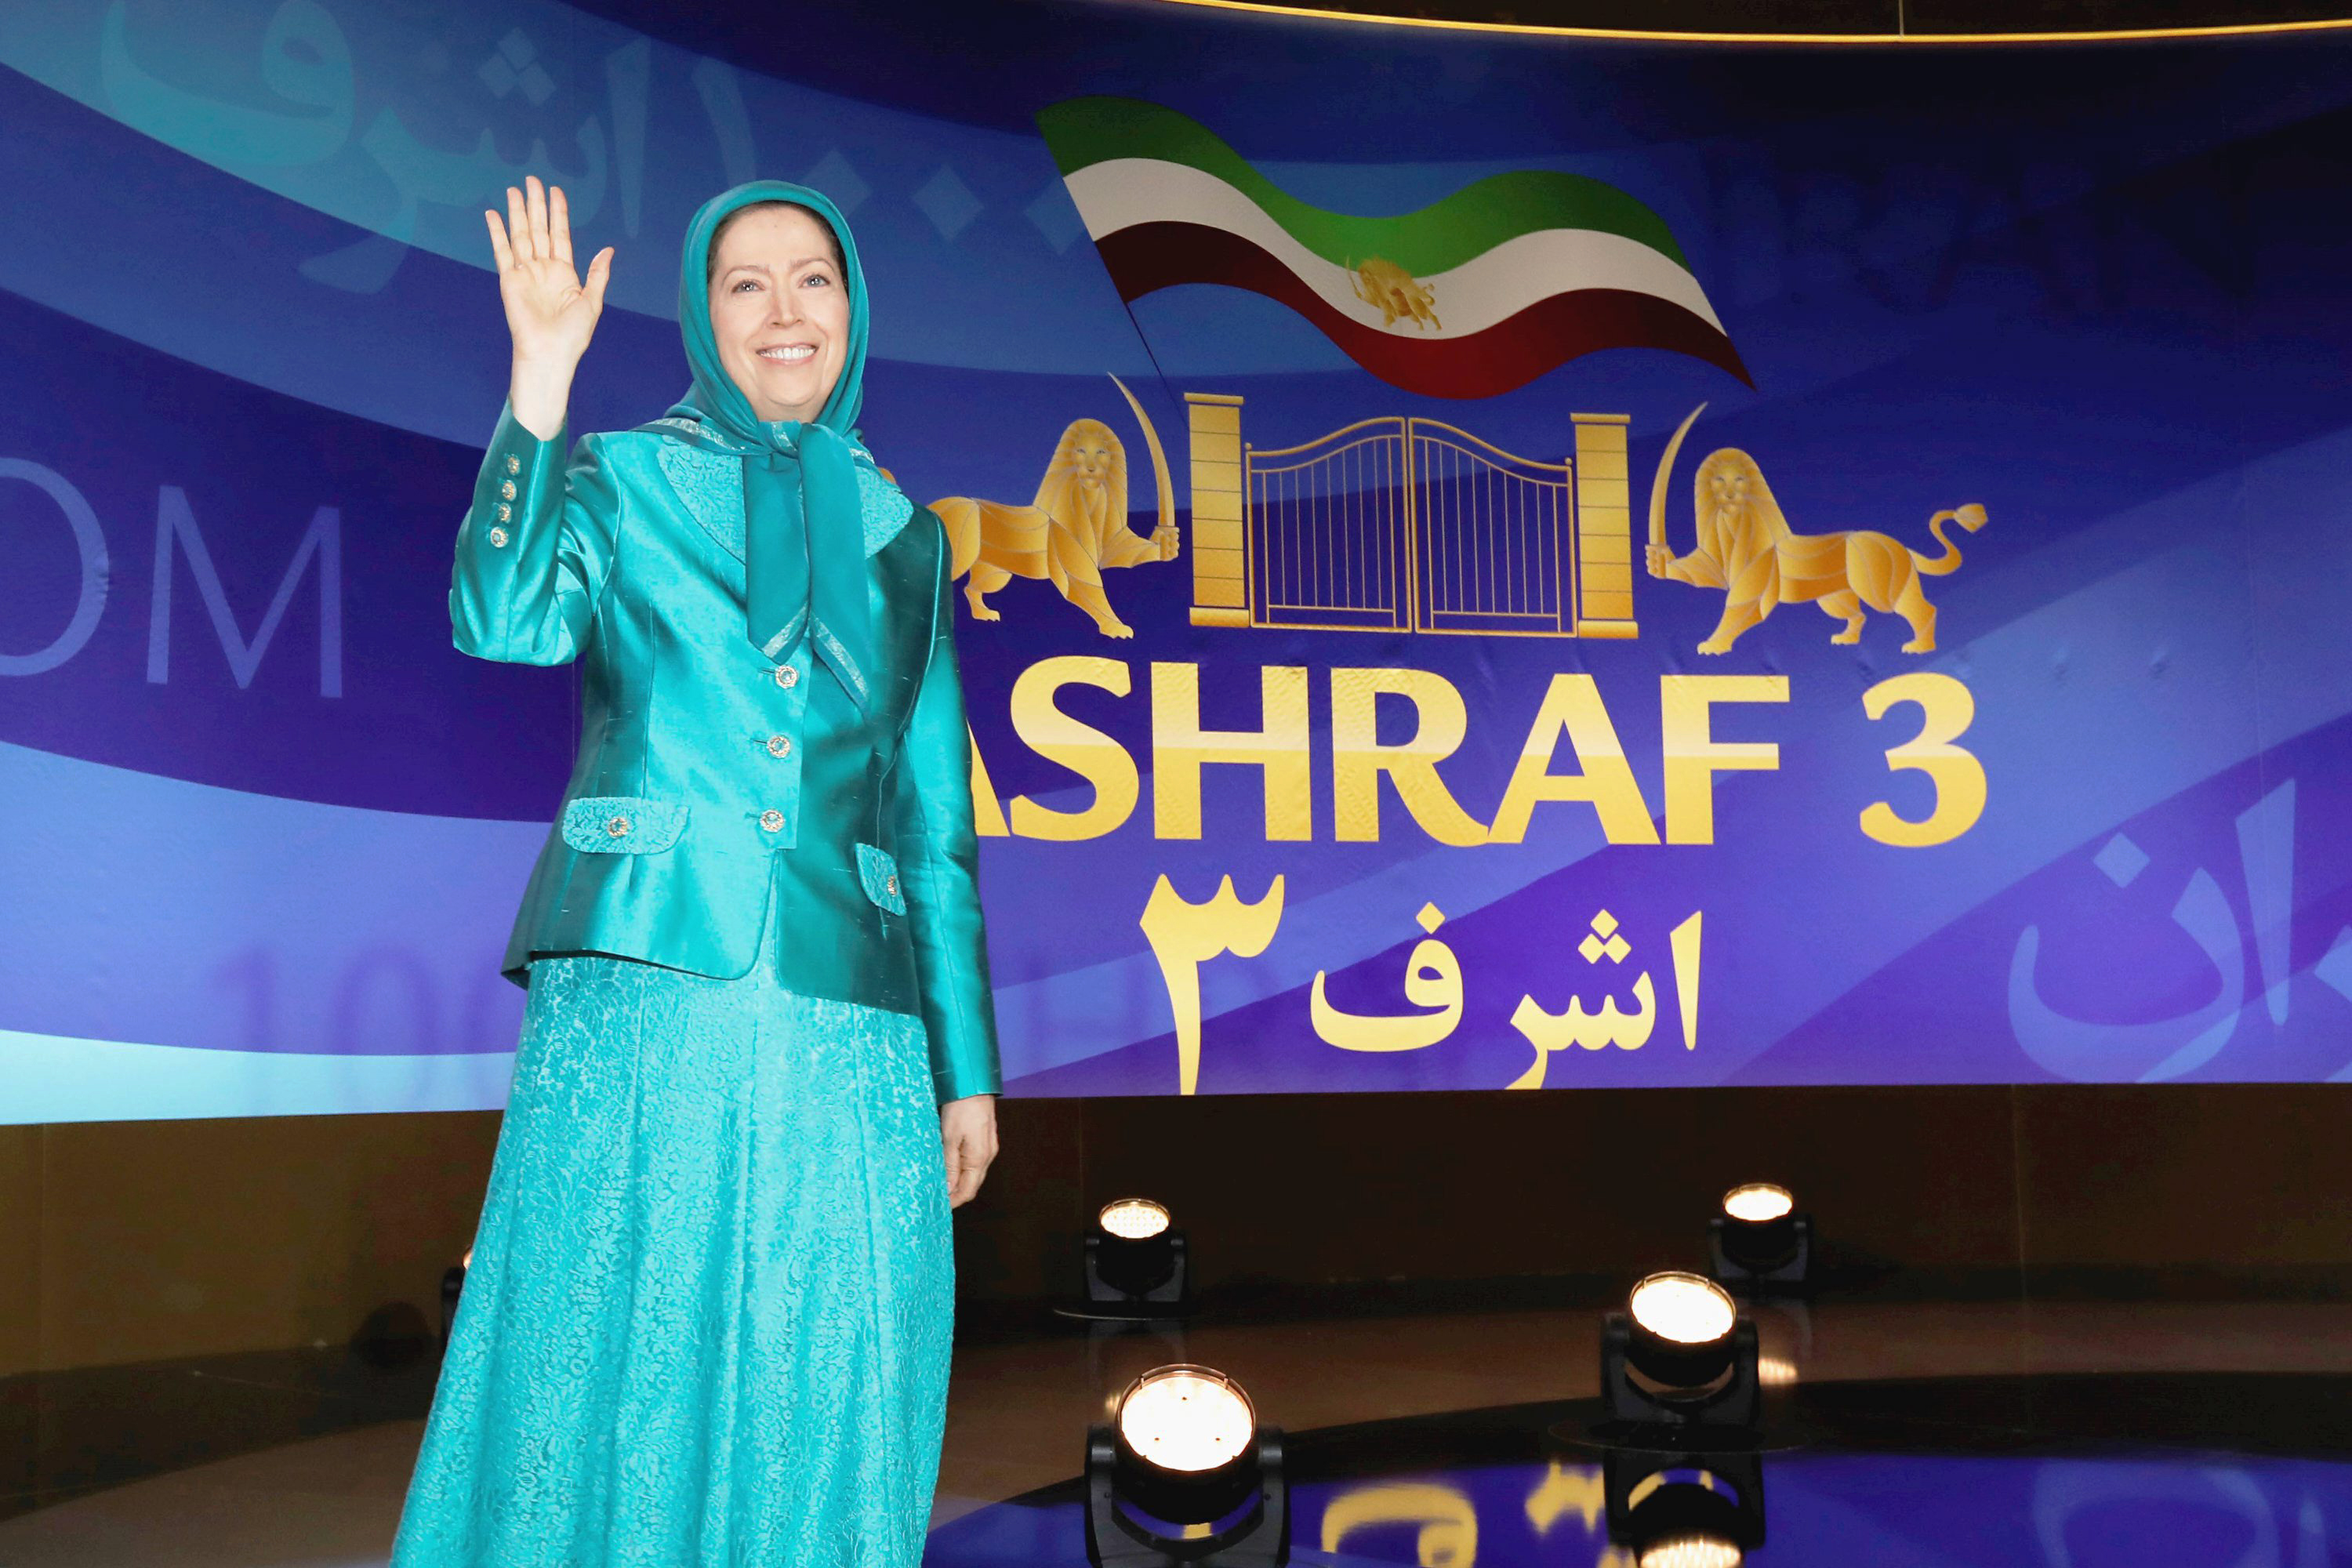 Maryam Rajavi: 'We will take back Iran'